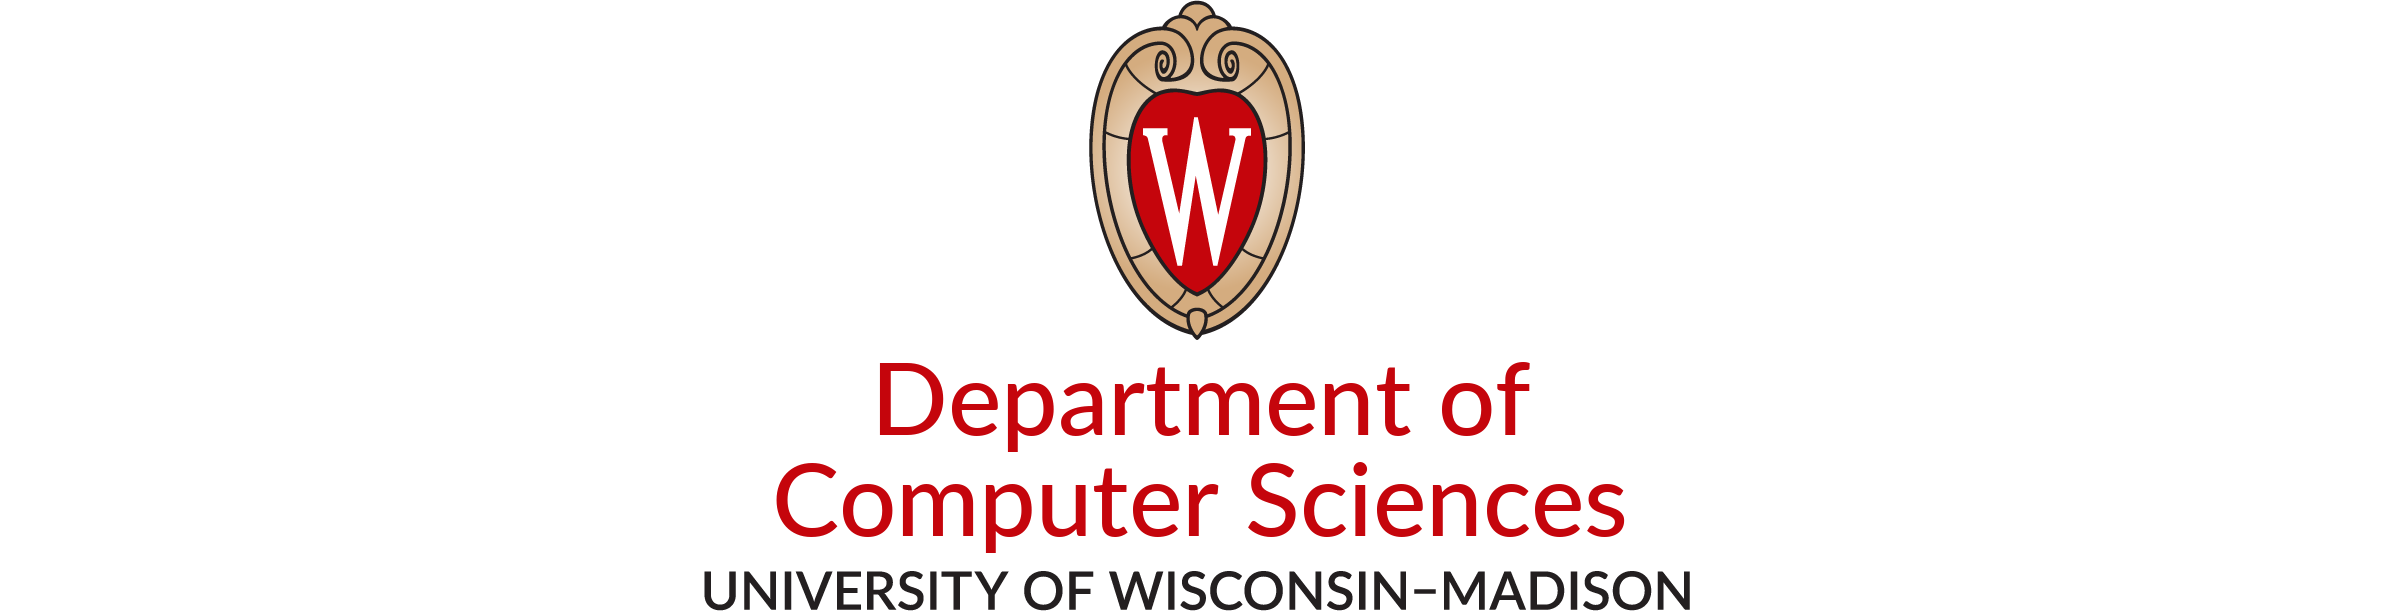 University of Wisconsin-Madison Department of Computer Sciences